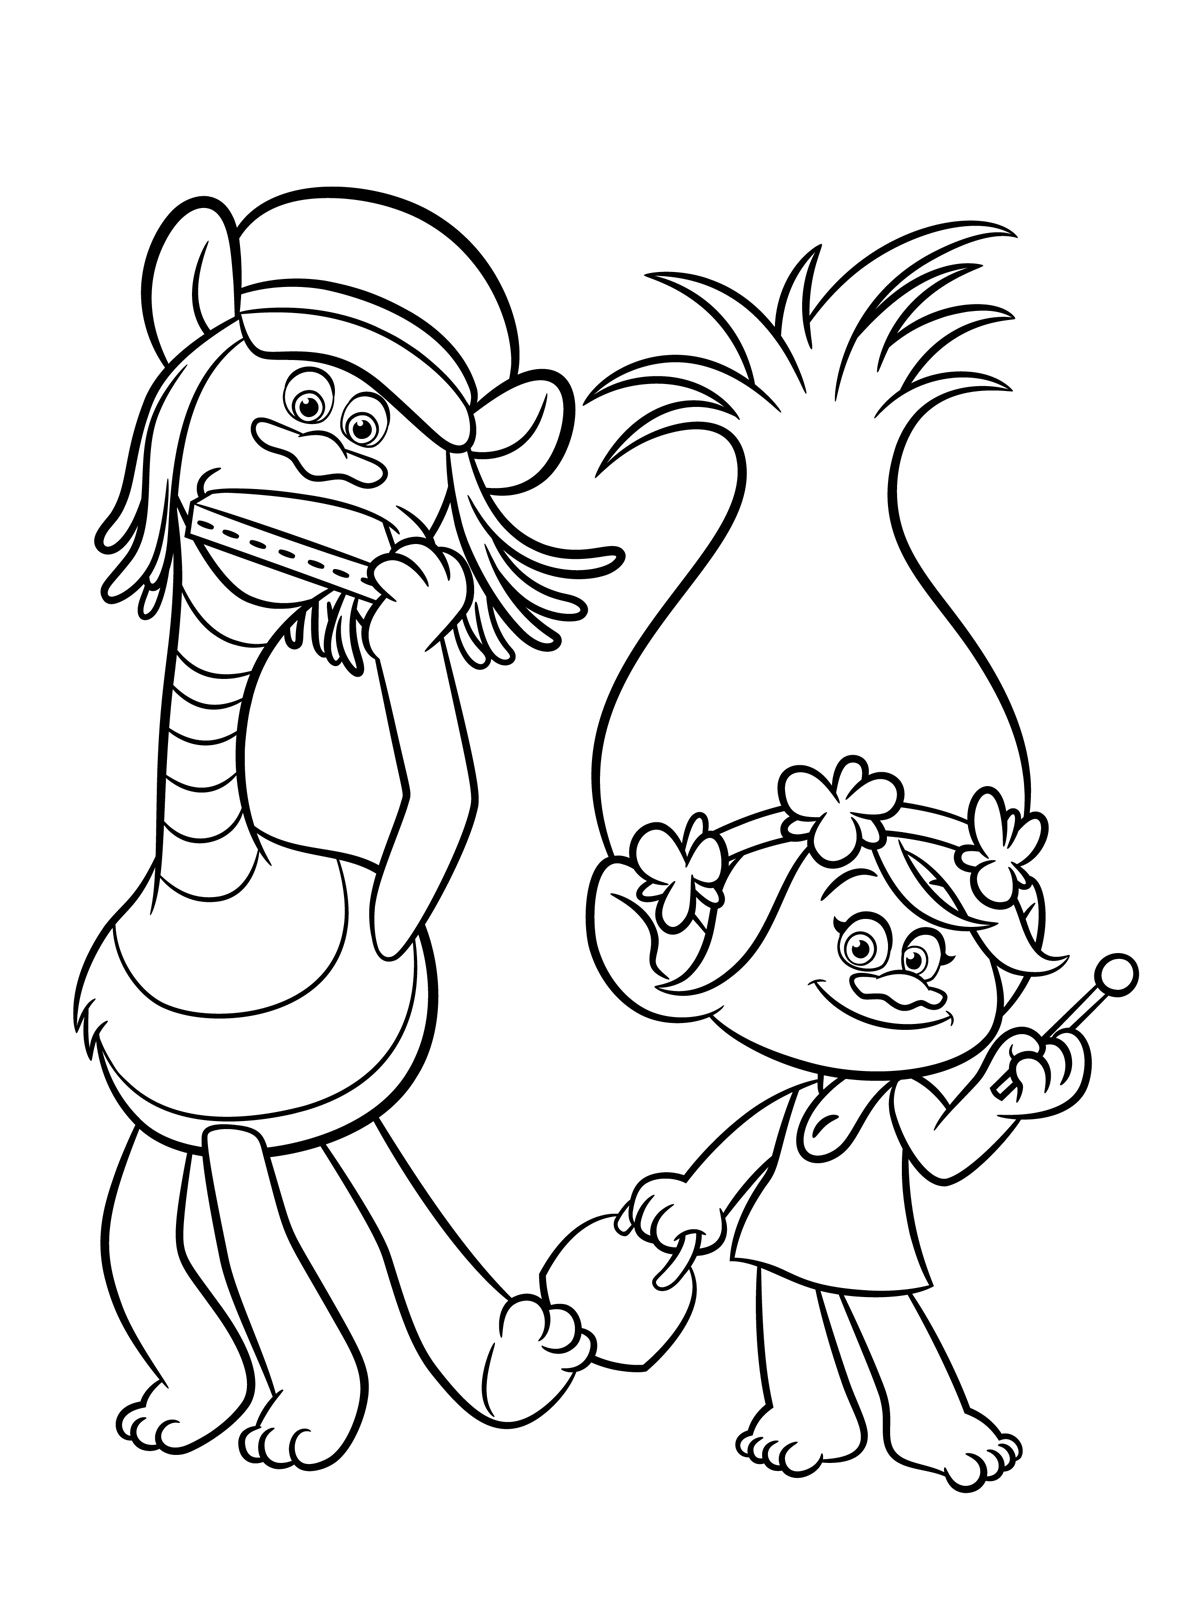 coloring kids pages zebra coloring pages free printable kids coloring pages coloring pages kids